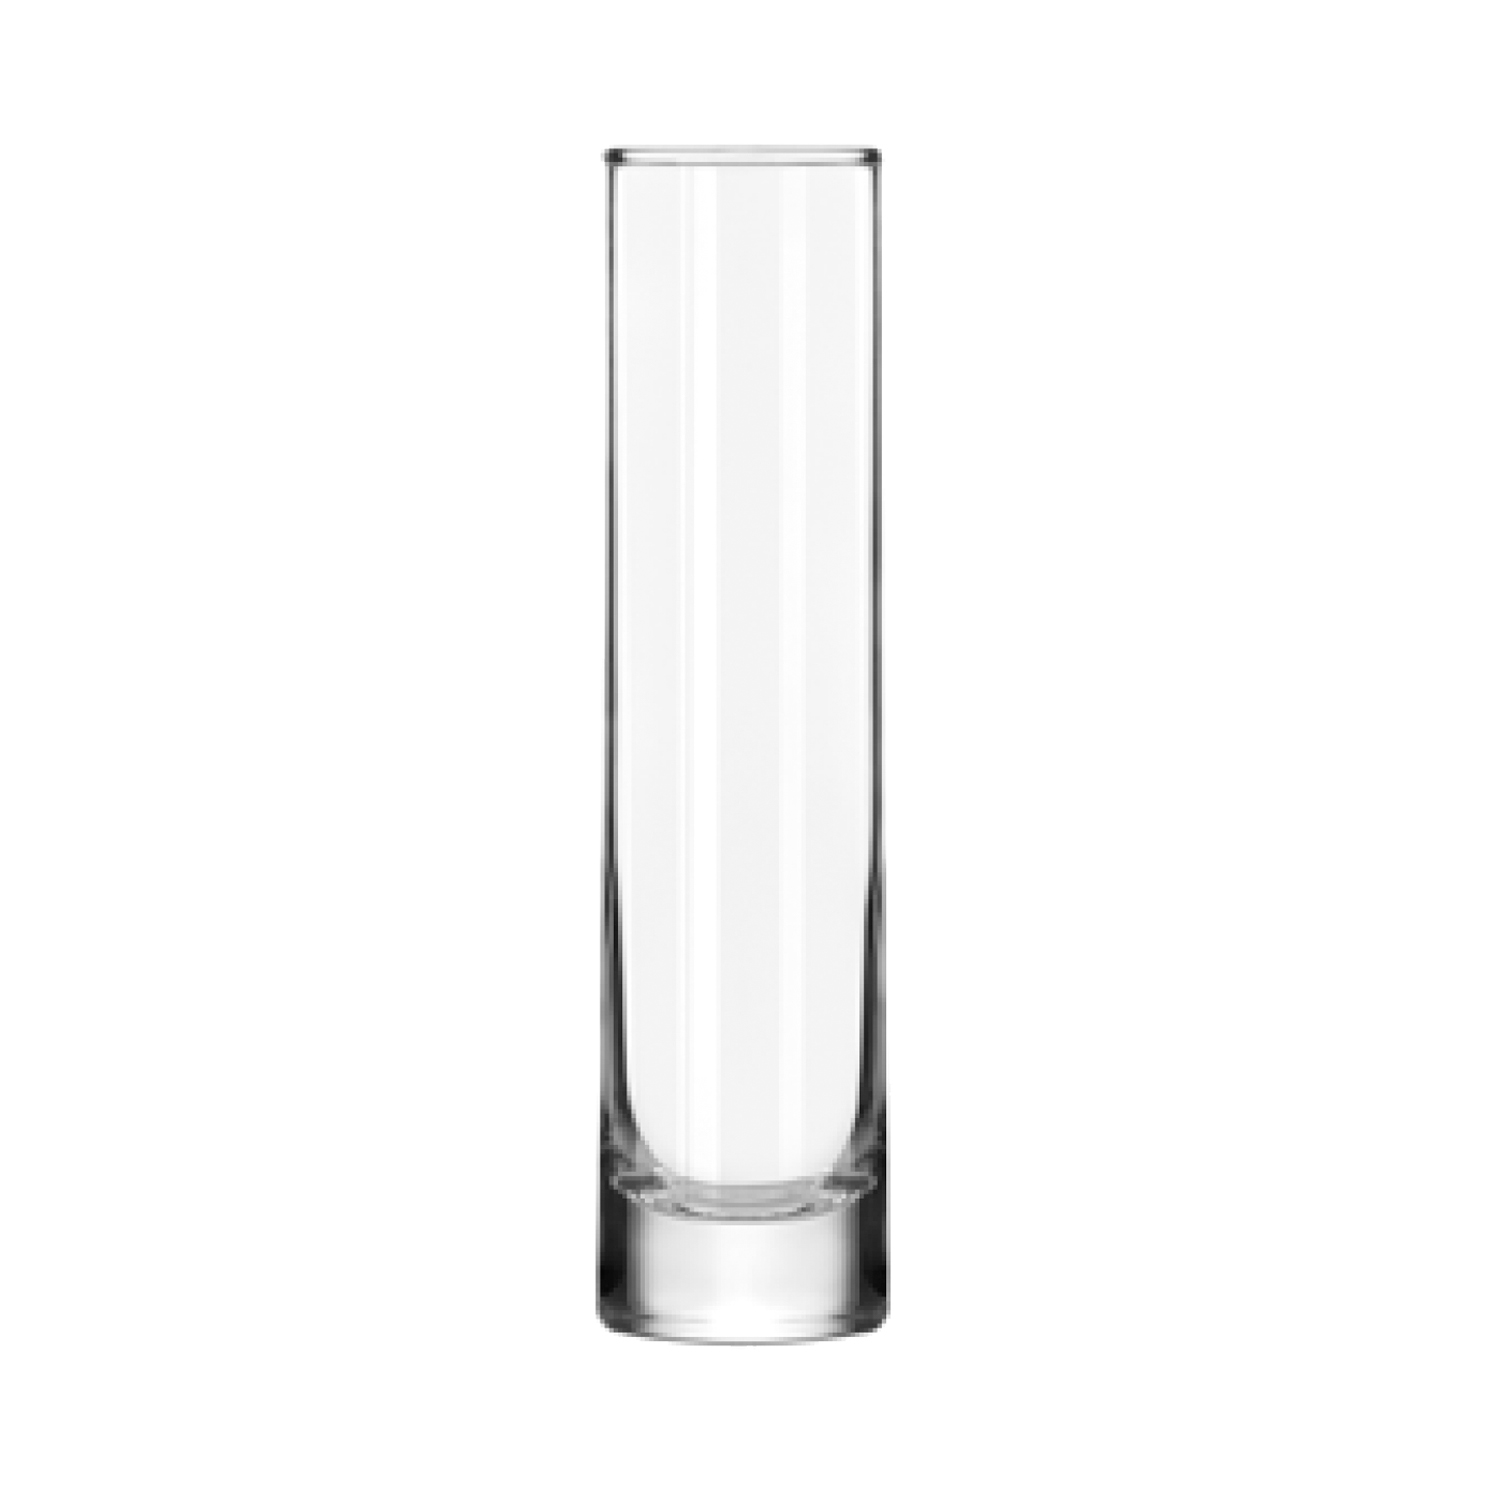 Libbey Glasswares Clear Cylinder Bud Vase, 1 Each